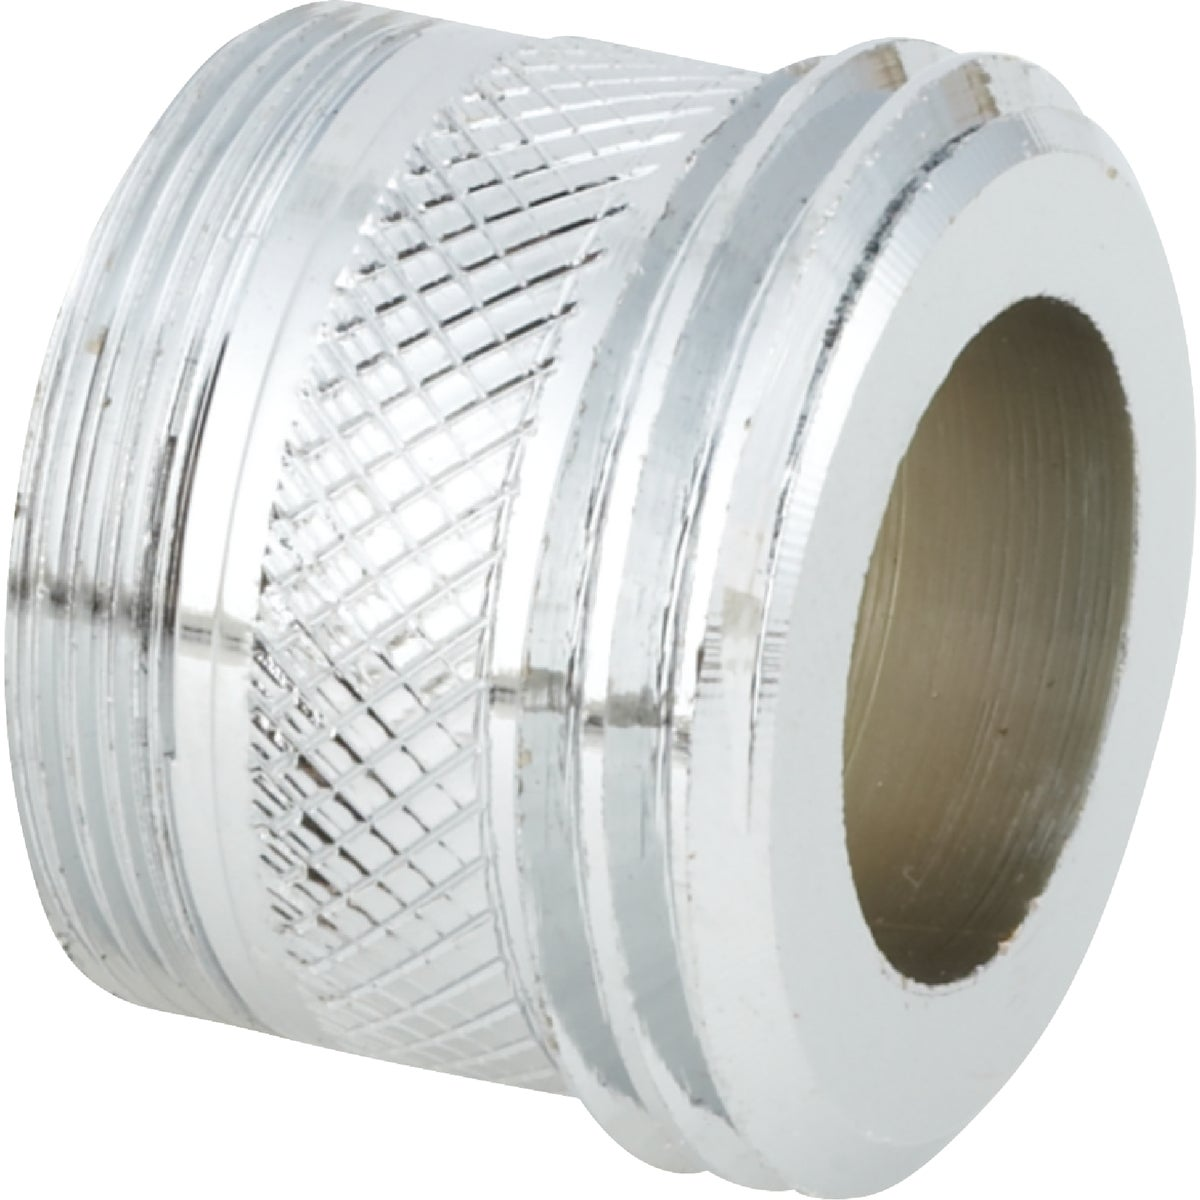 55/64MX3/4MHT ADAPTER - W-1146LF by Do it Best